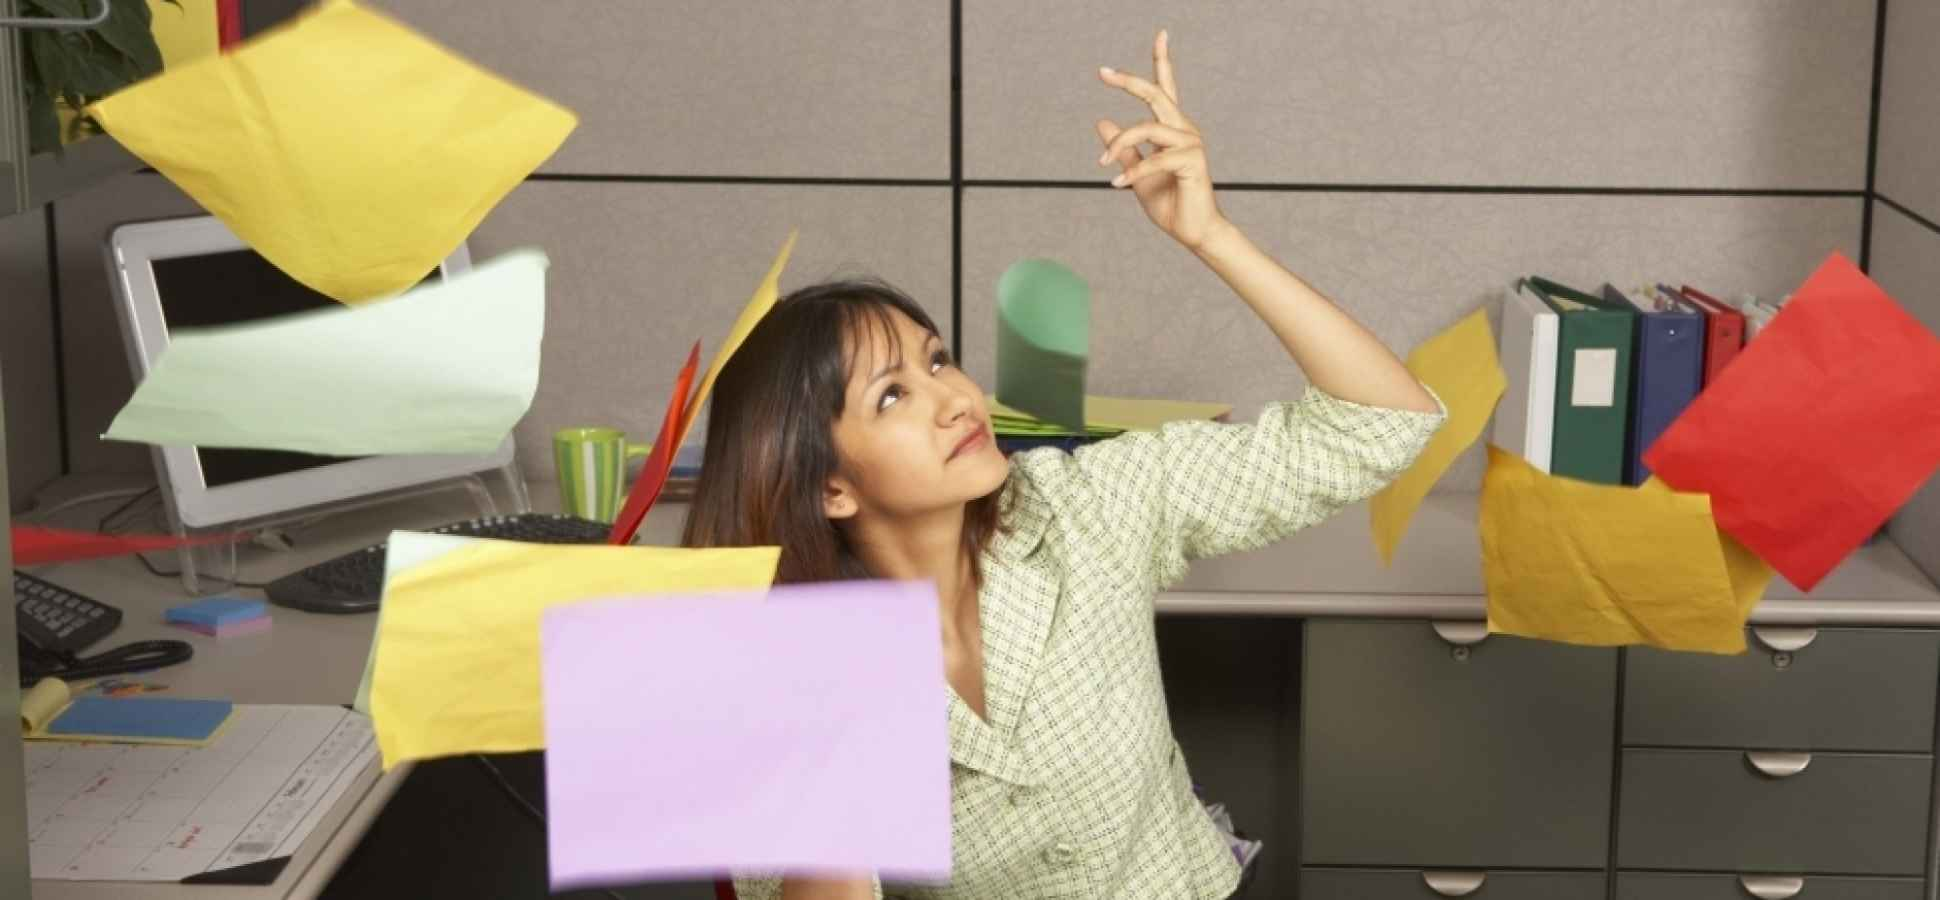 11 Absolutely Outrageous Ways to Quit Your Job